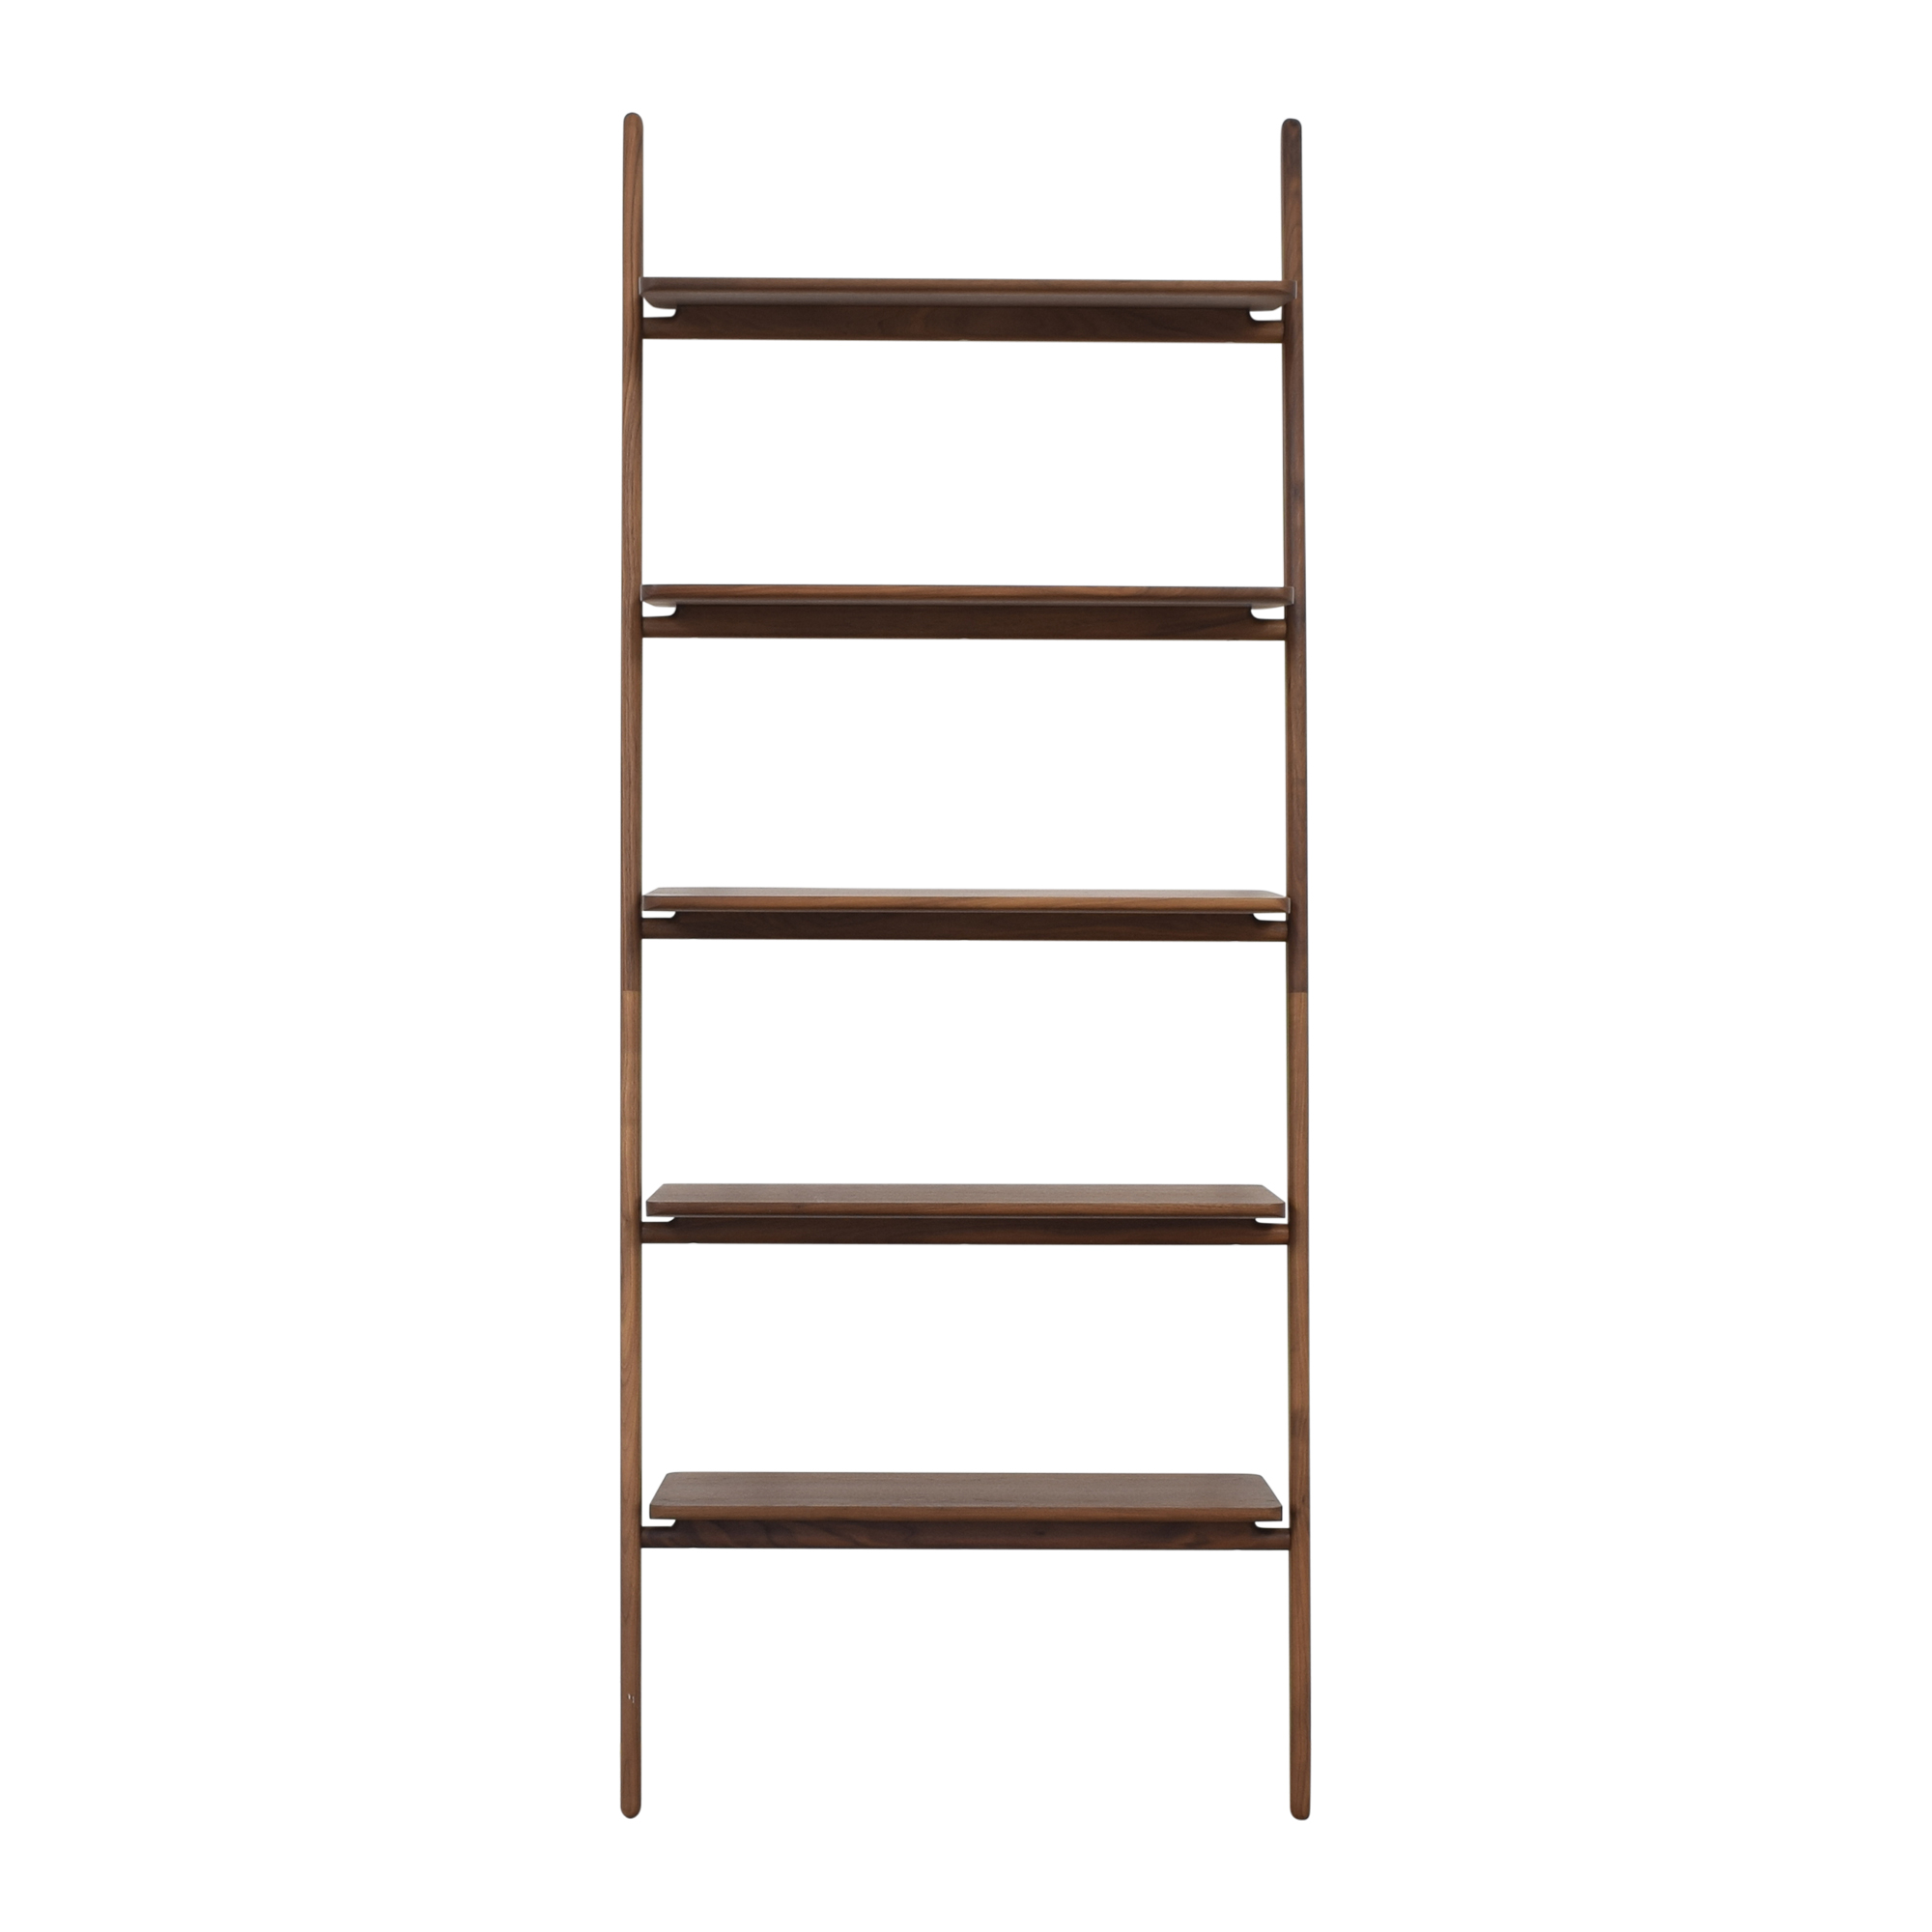 shop Design Within Reach Folk Ladder Shelving Design Within Reach Bookcases & Shelving